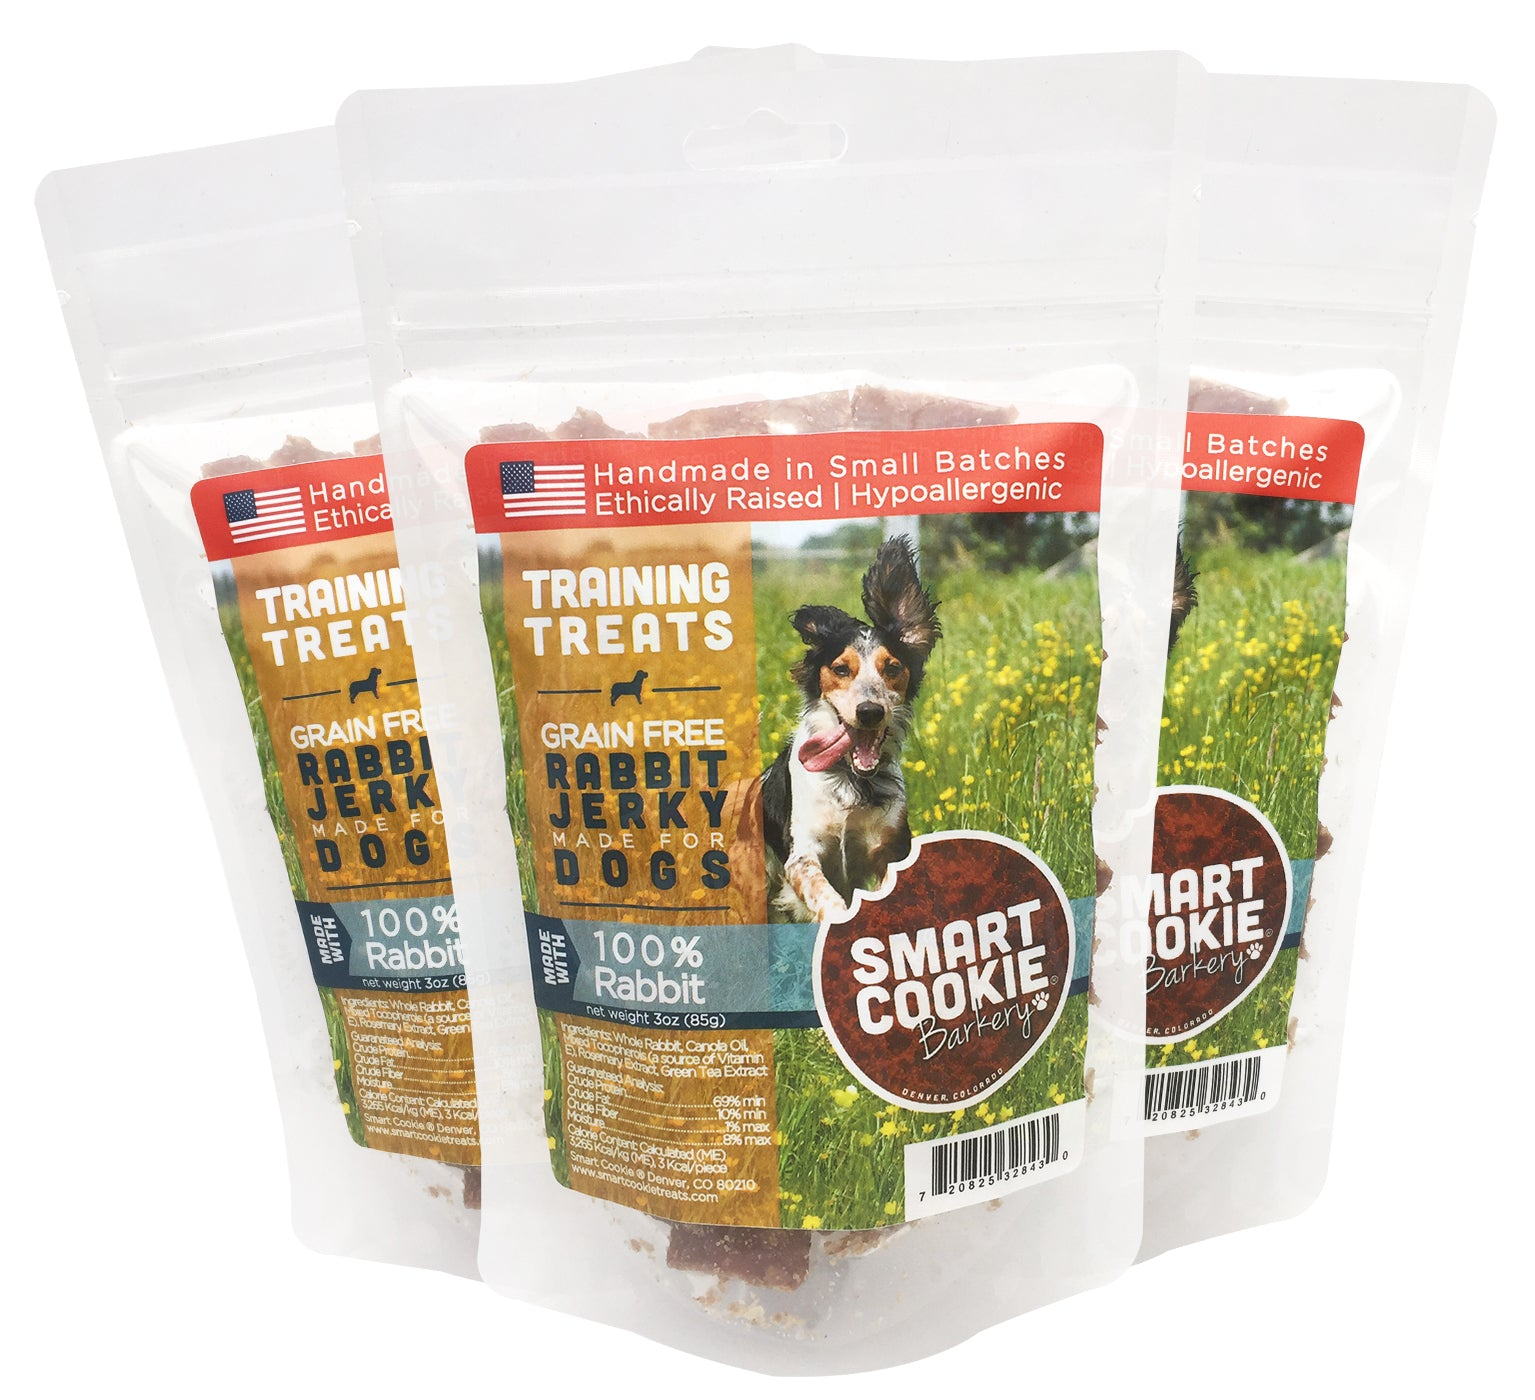 Rabbit Jerky Training Treats for Dogs